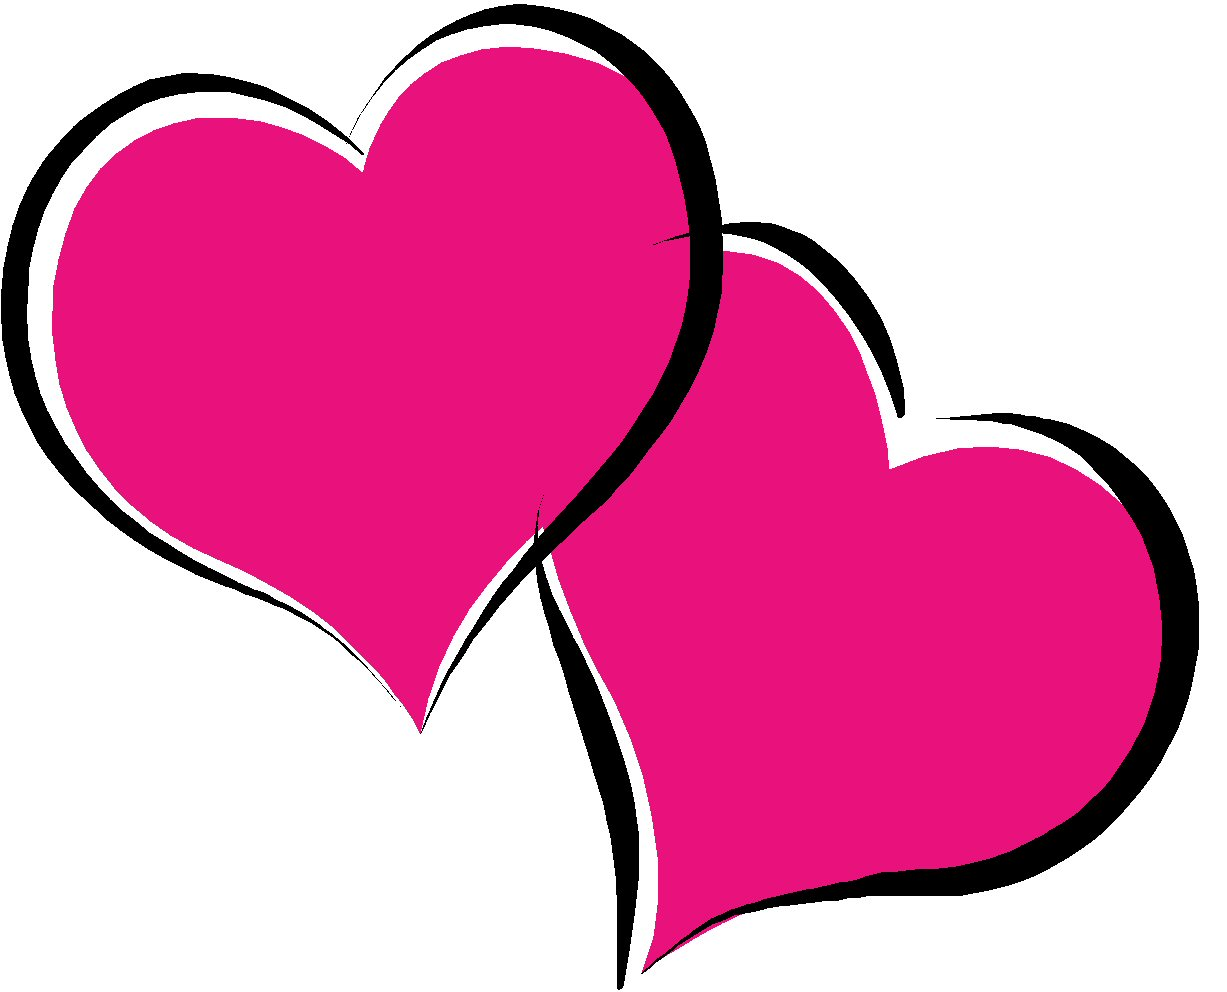 Heart clipart #13, Download drawings